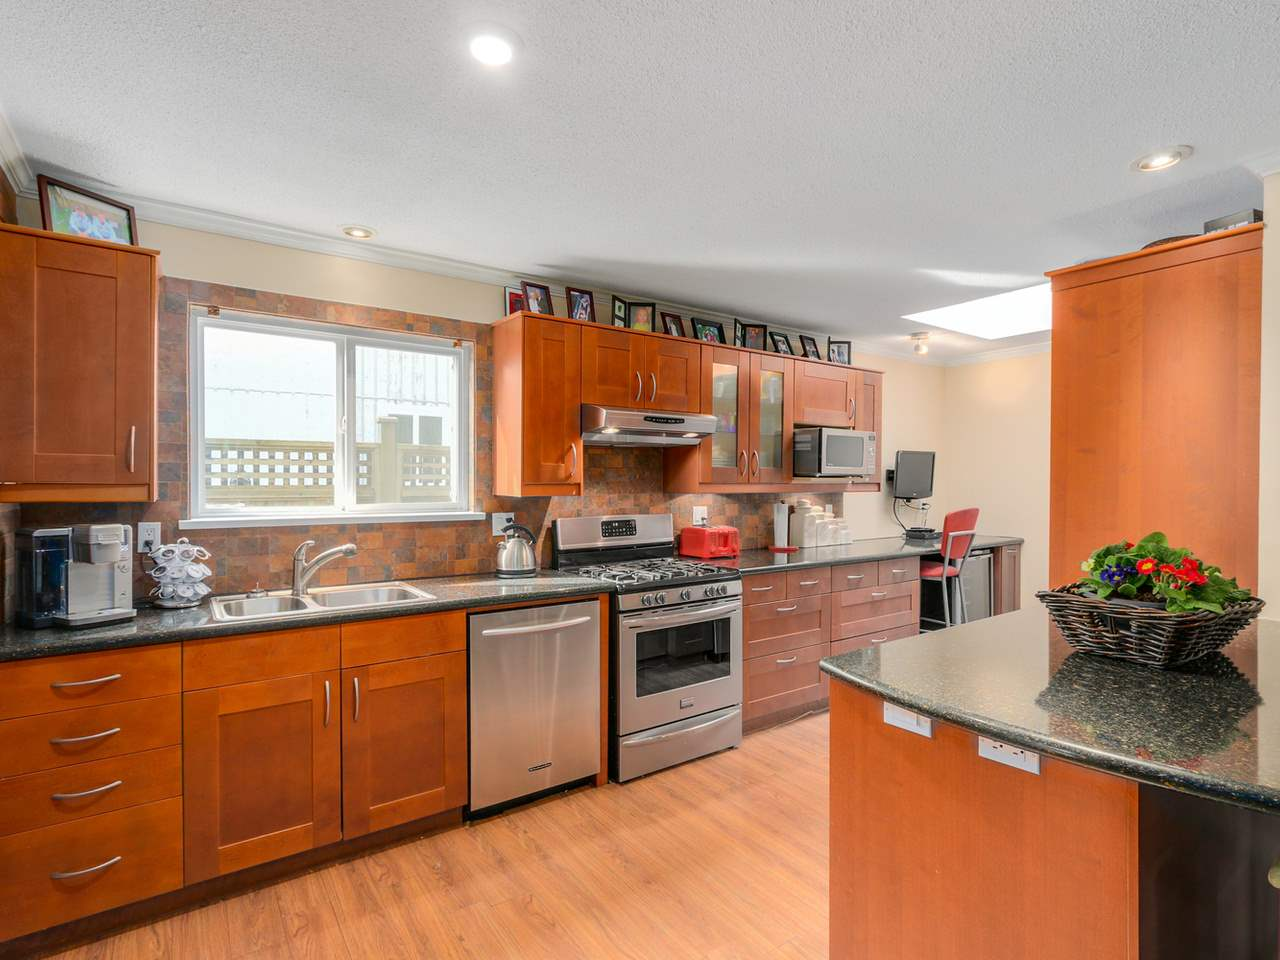 Photo 8: 3268 DUNKIRK Avenue in Coquitlam: New Horizons House for sale : MLS(r) # R2047015